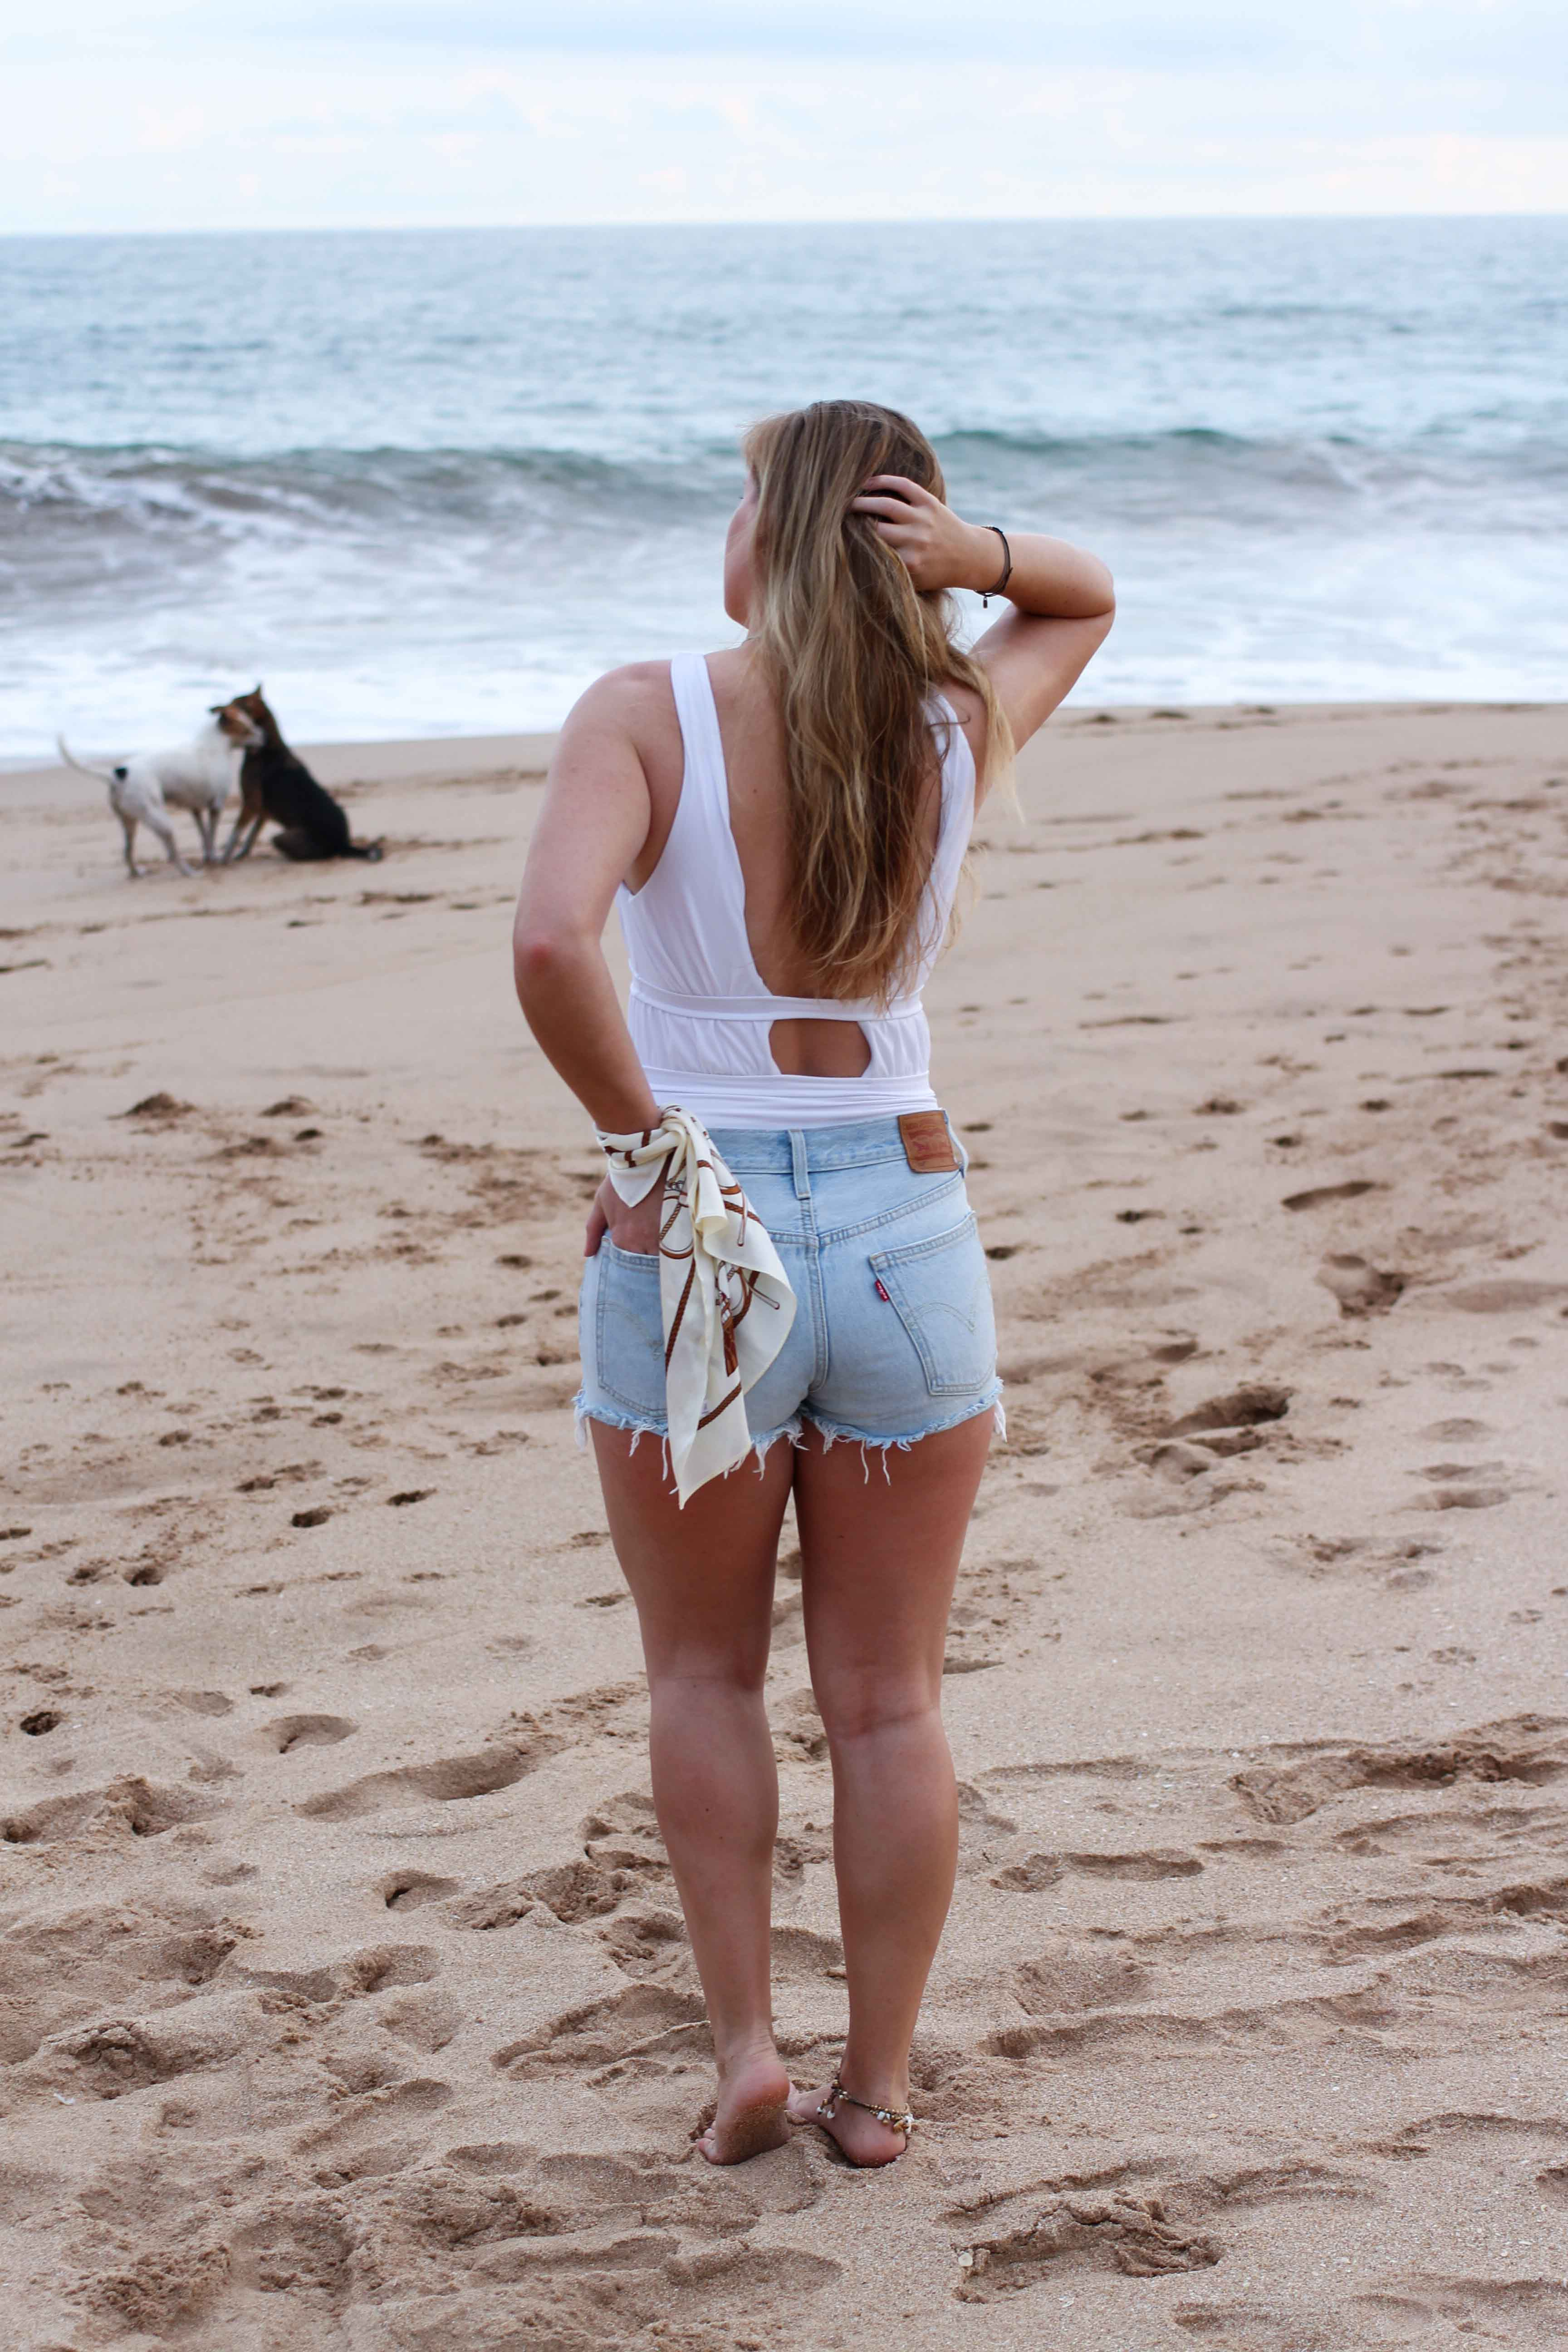 Badeanzug weiß kombinieren Jeans Hotpants Levis 501 Shorts Beachlook Sri Lanka Tangalle Sommer Outfit Modeblog 6